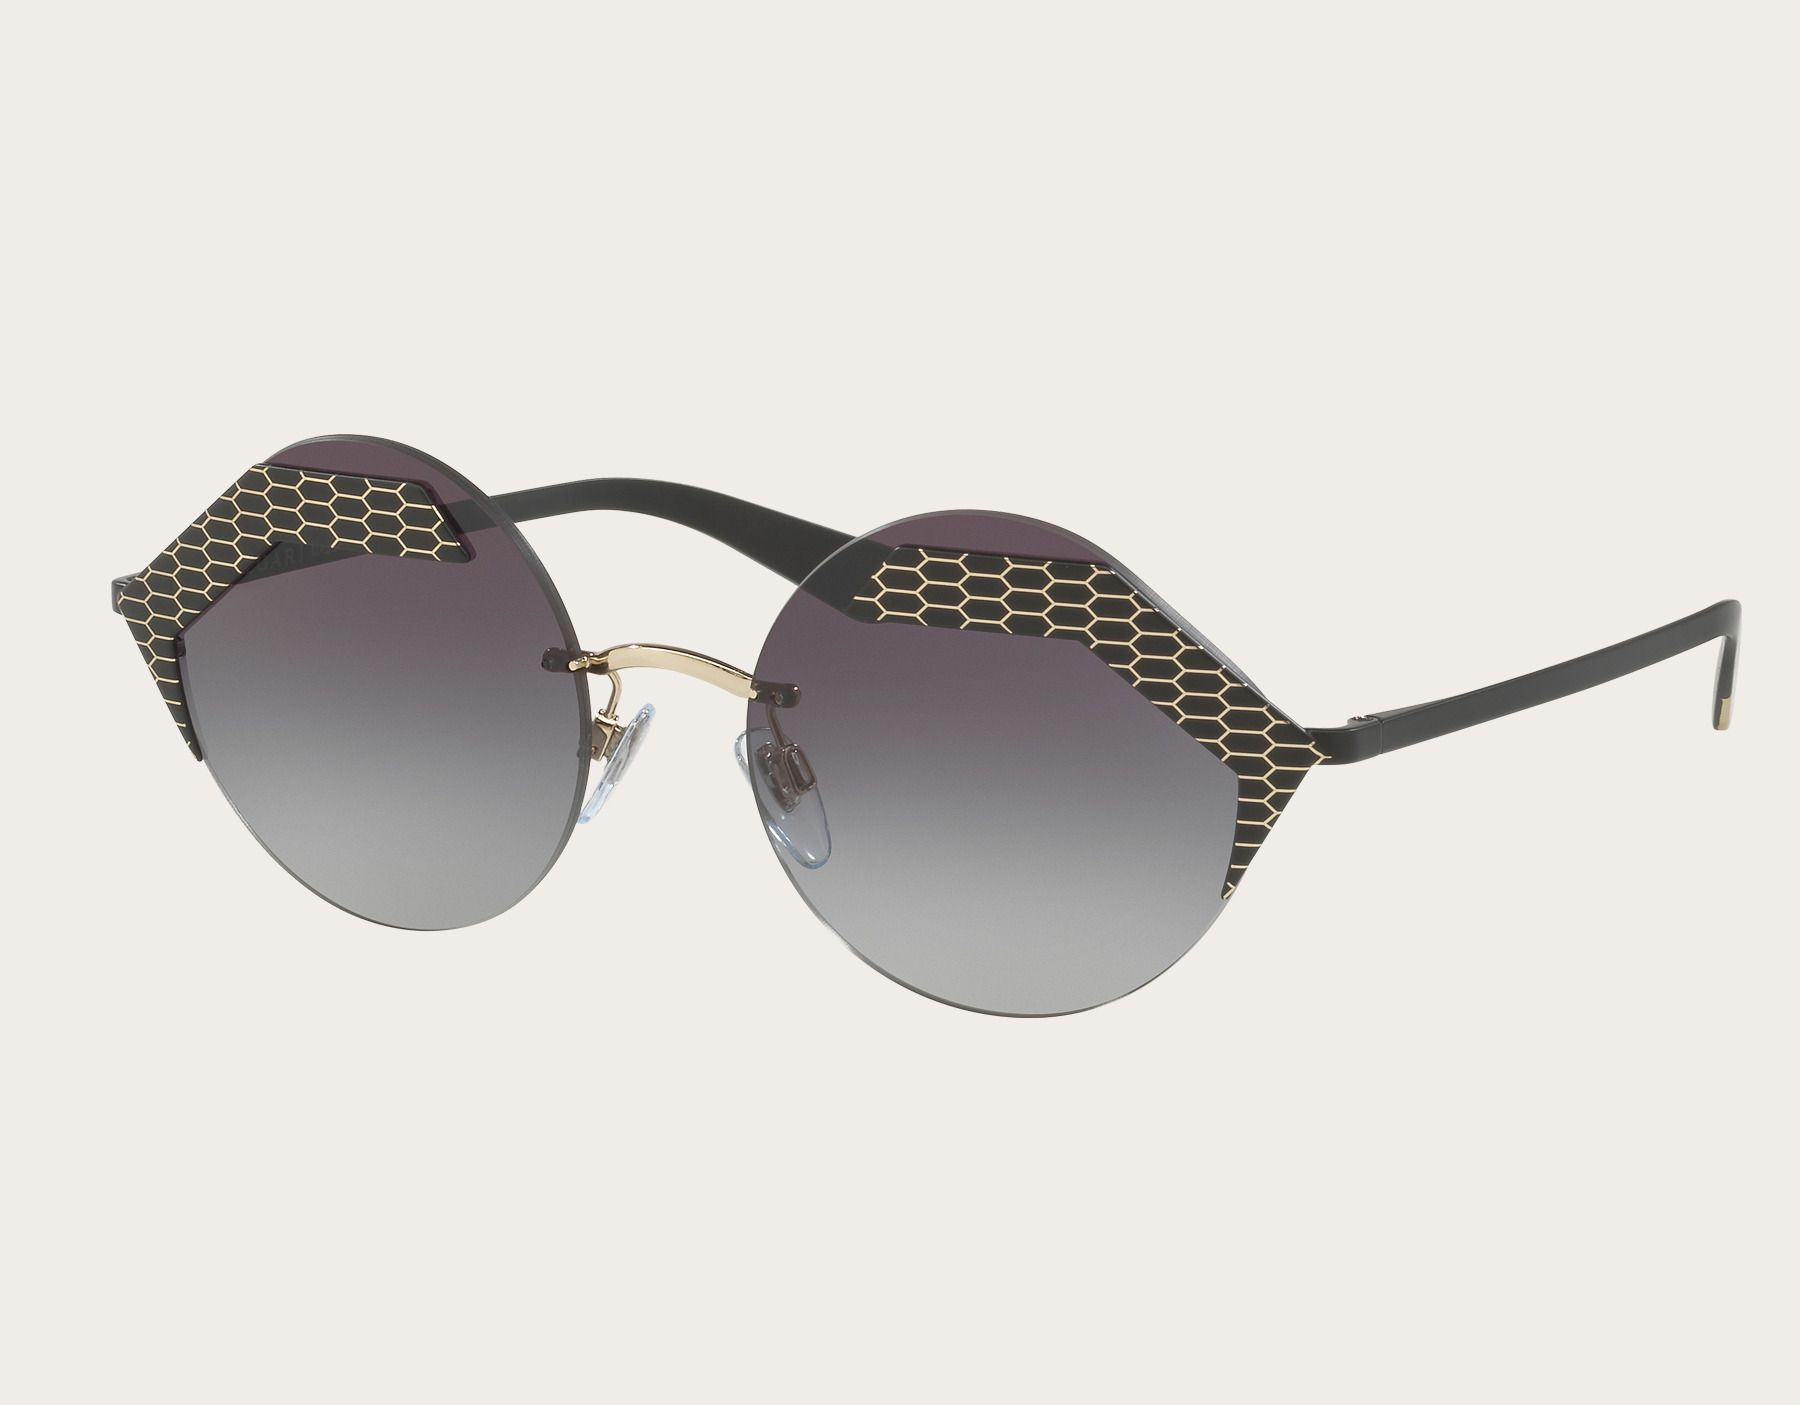 122d7d3d7c08 Serpenti sunglasses 903234 - Discover Bvlgari s collections and read more  about the magnificent Italian jeweler on the official website.